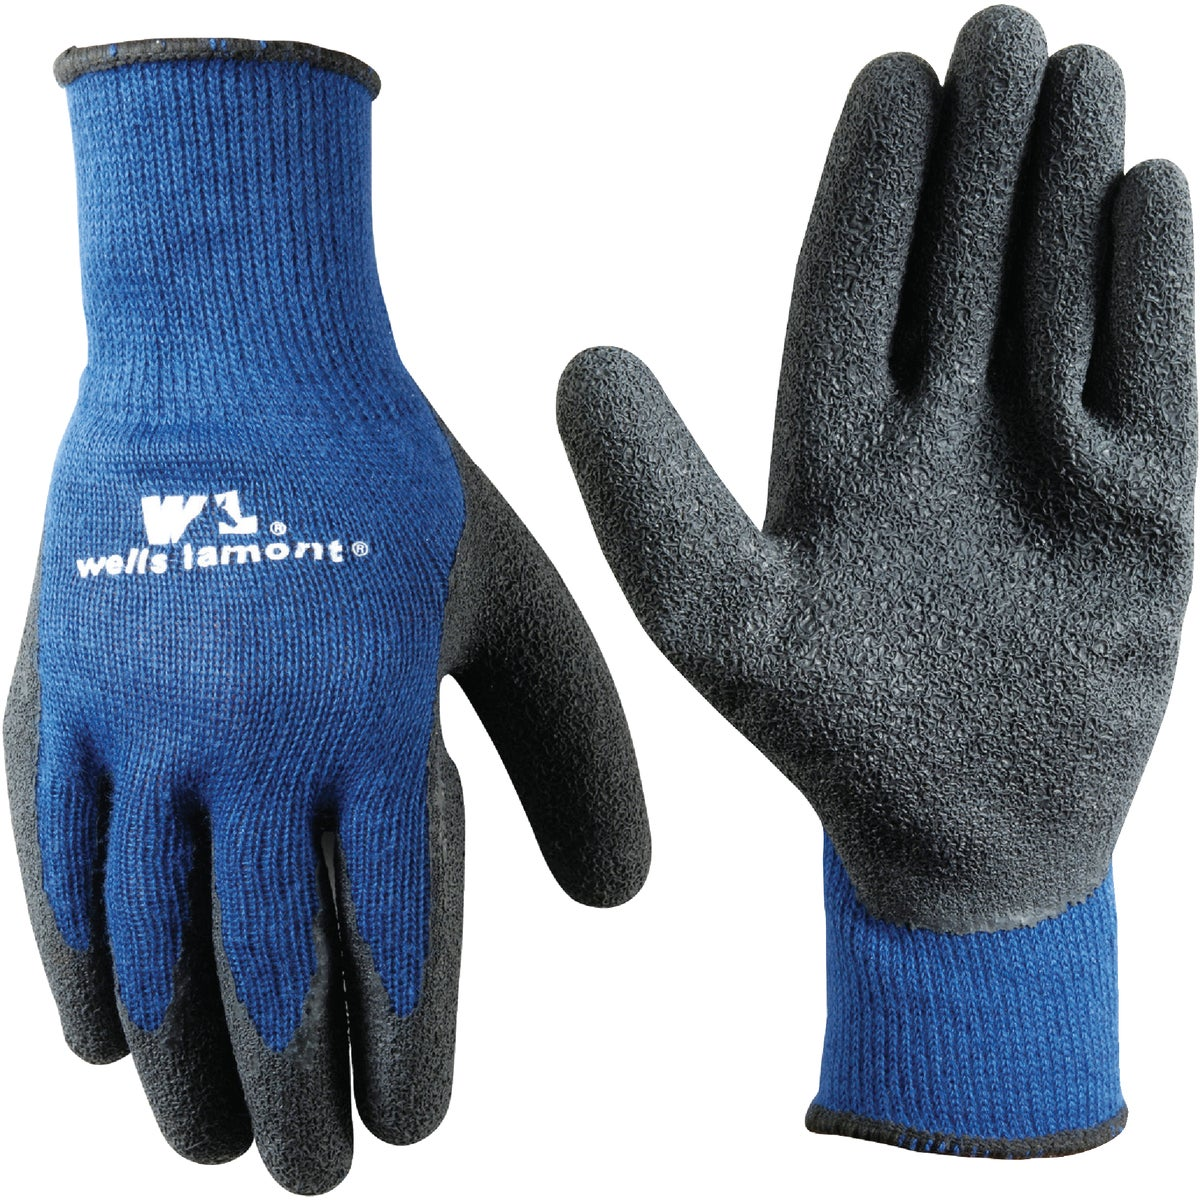 MED LATEX COATED GLOVE